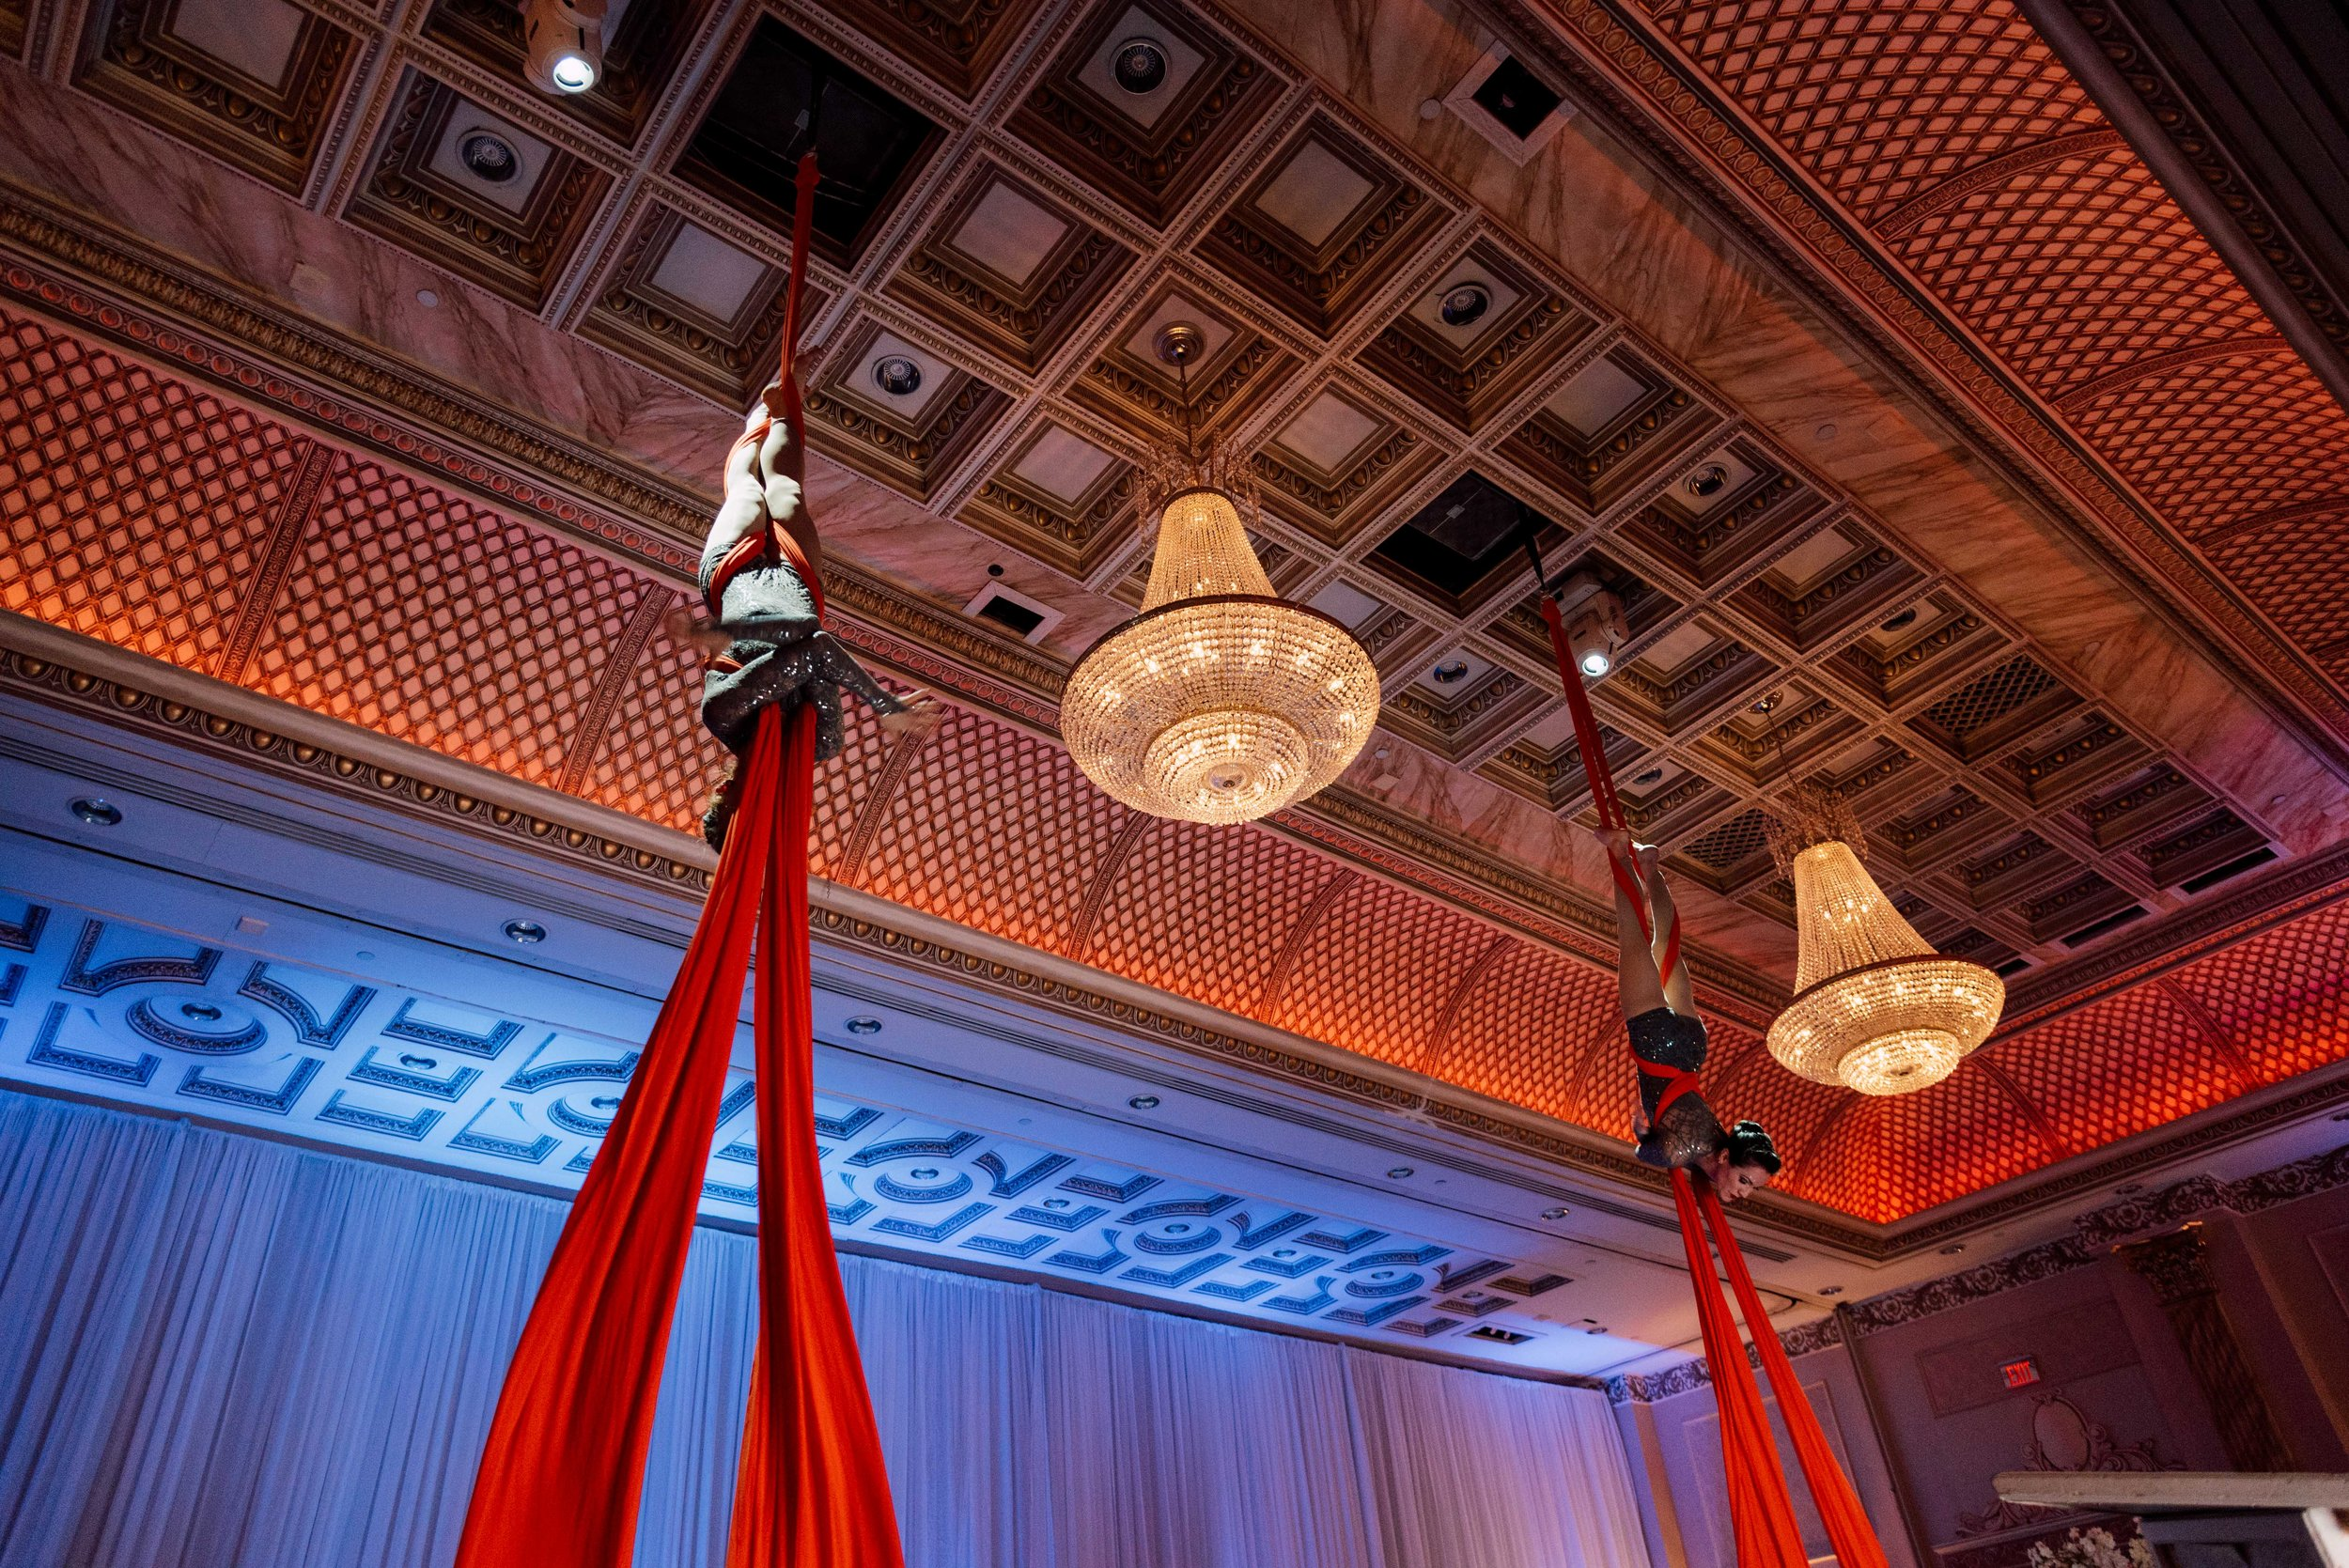 aerialist hanging Special event photography at chateau le jardin in woodbridge ontario